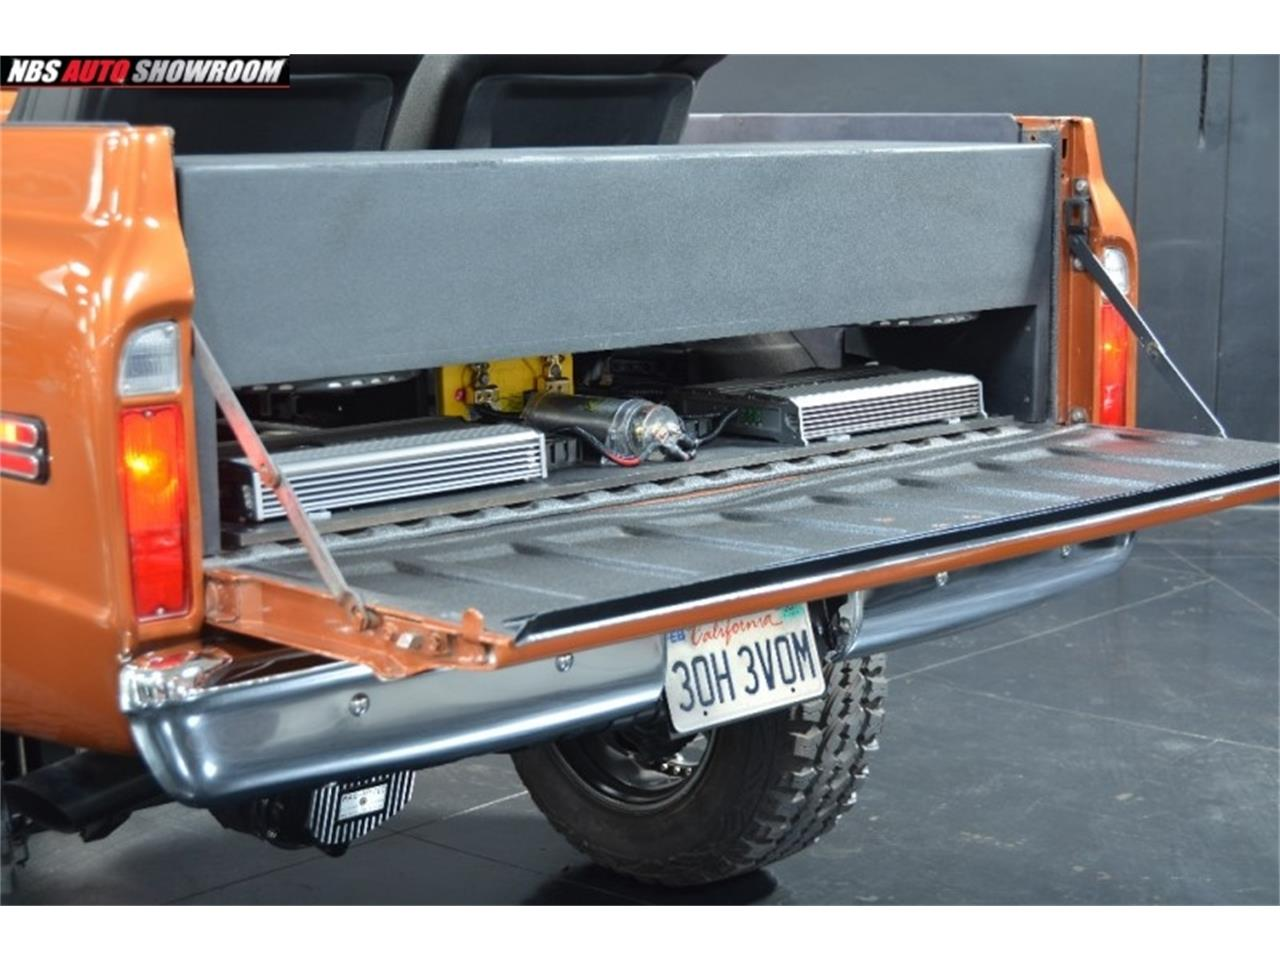 Large Picture of Classic '70 Chevrolet Blazer - $55,250.00 Offered by NBS Auto Showroom - PR1D